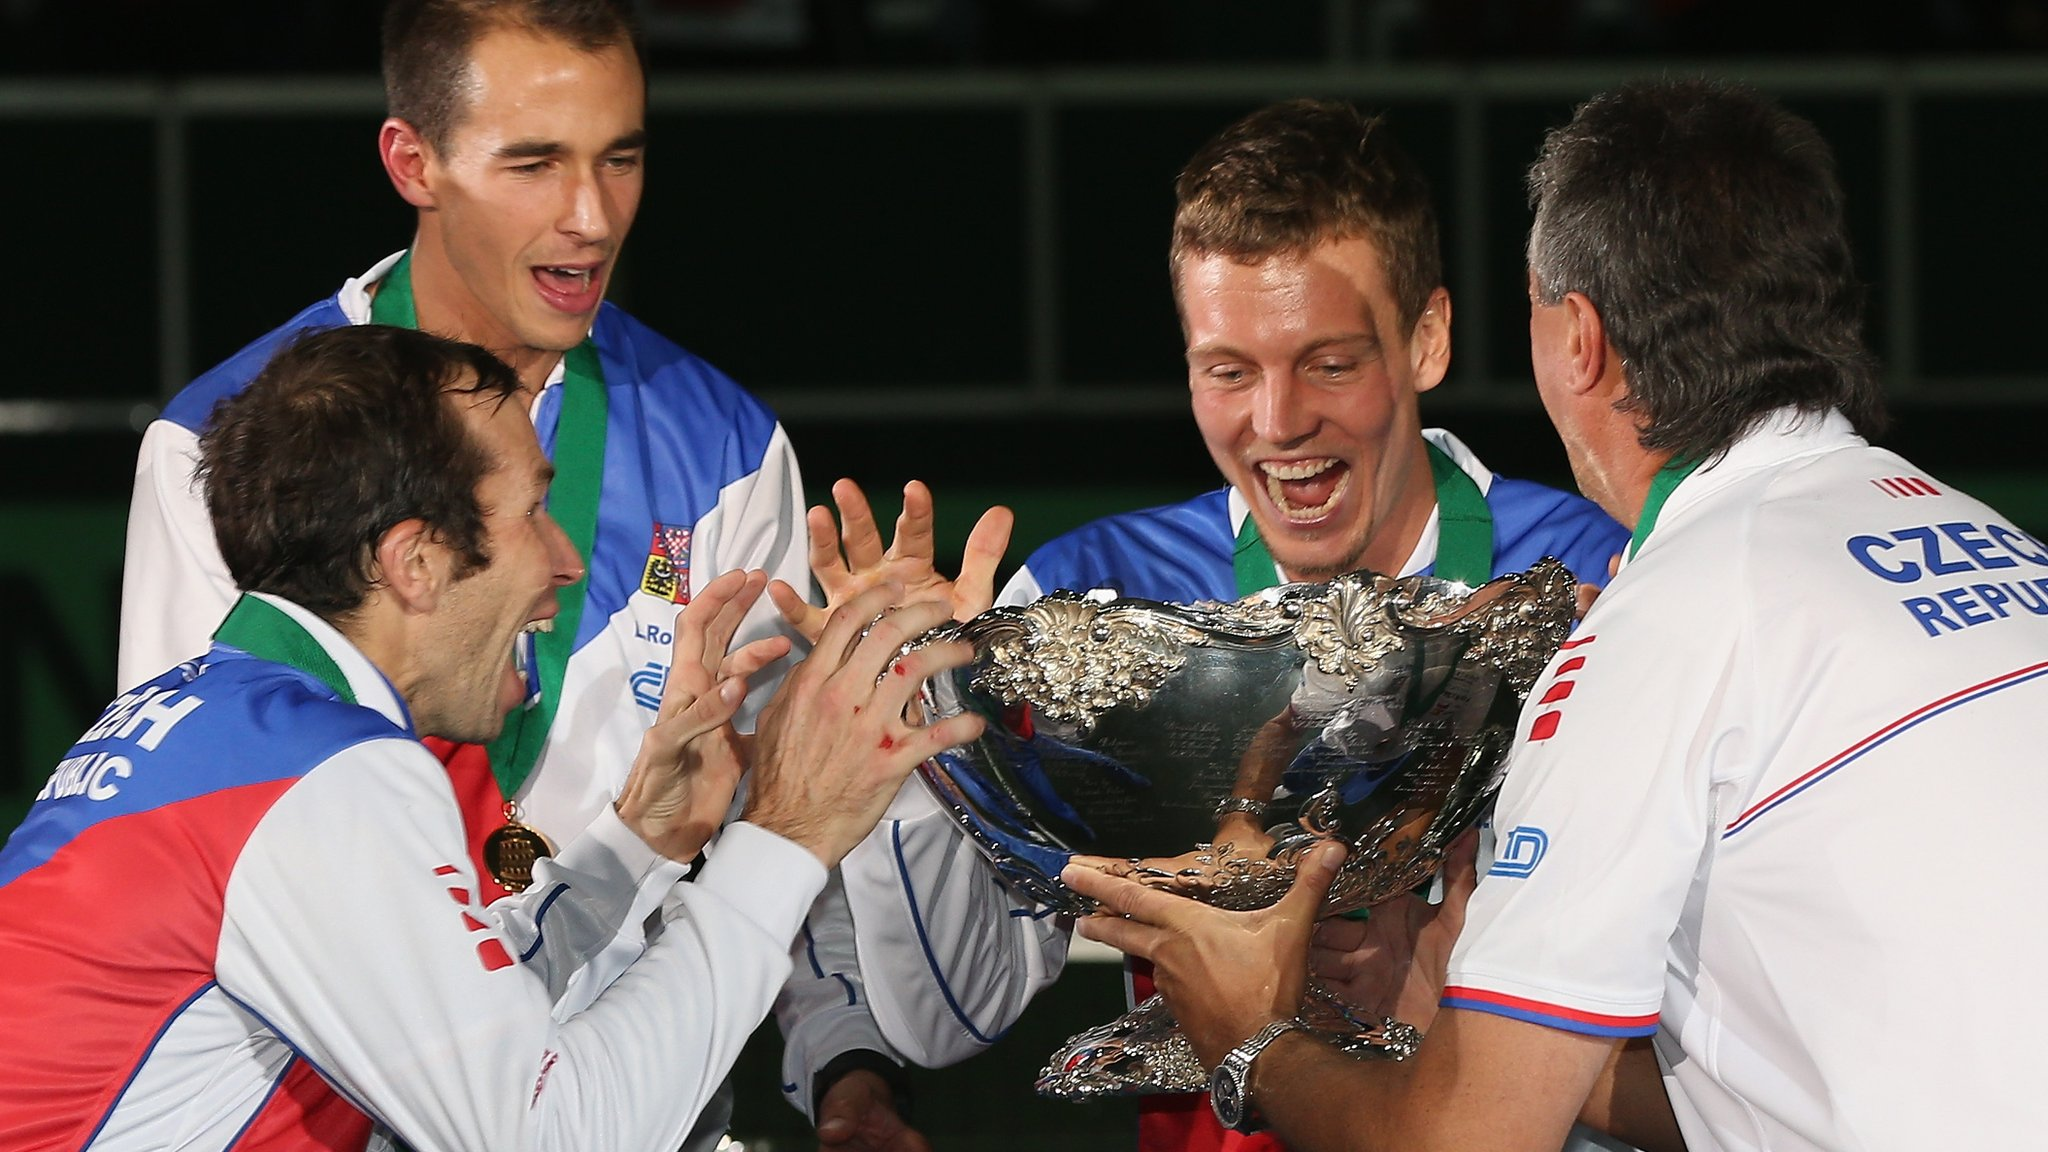 'Changes threaten death of Davis Cup' - past winners Berdych & Hewitt speak out